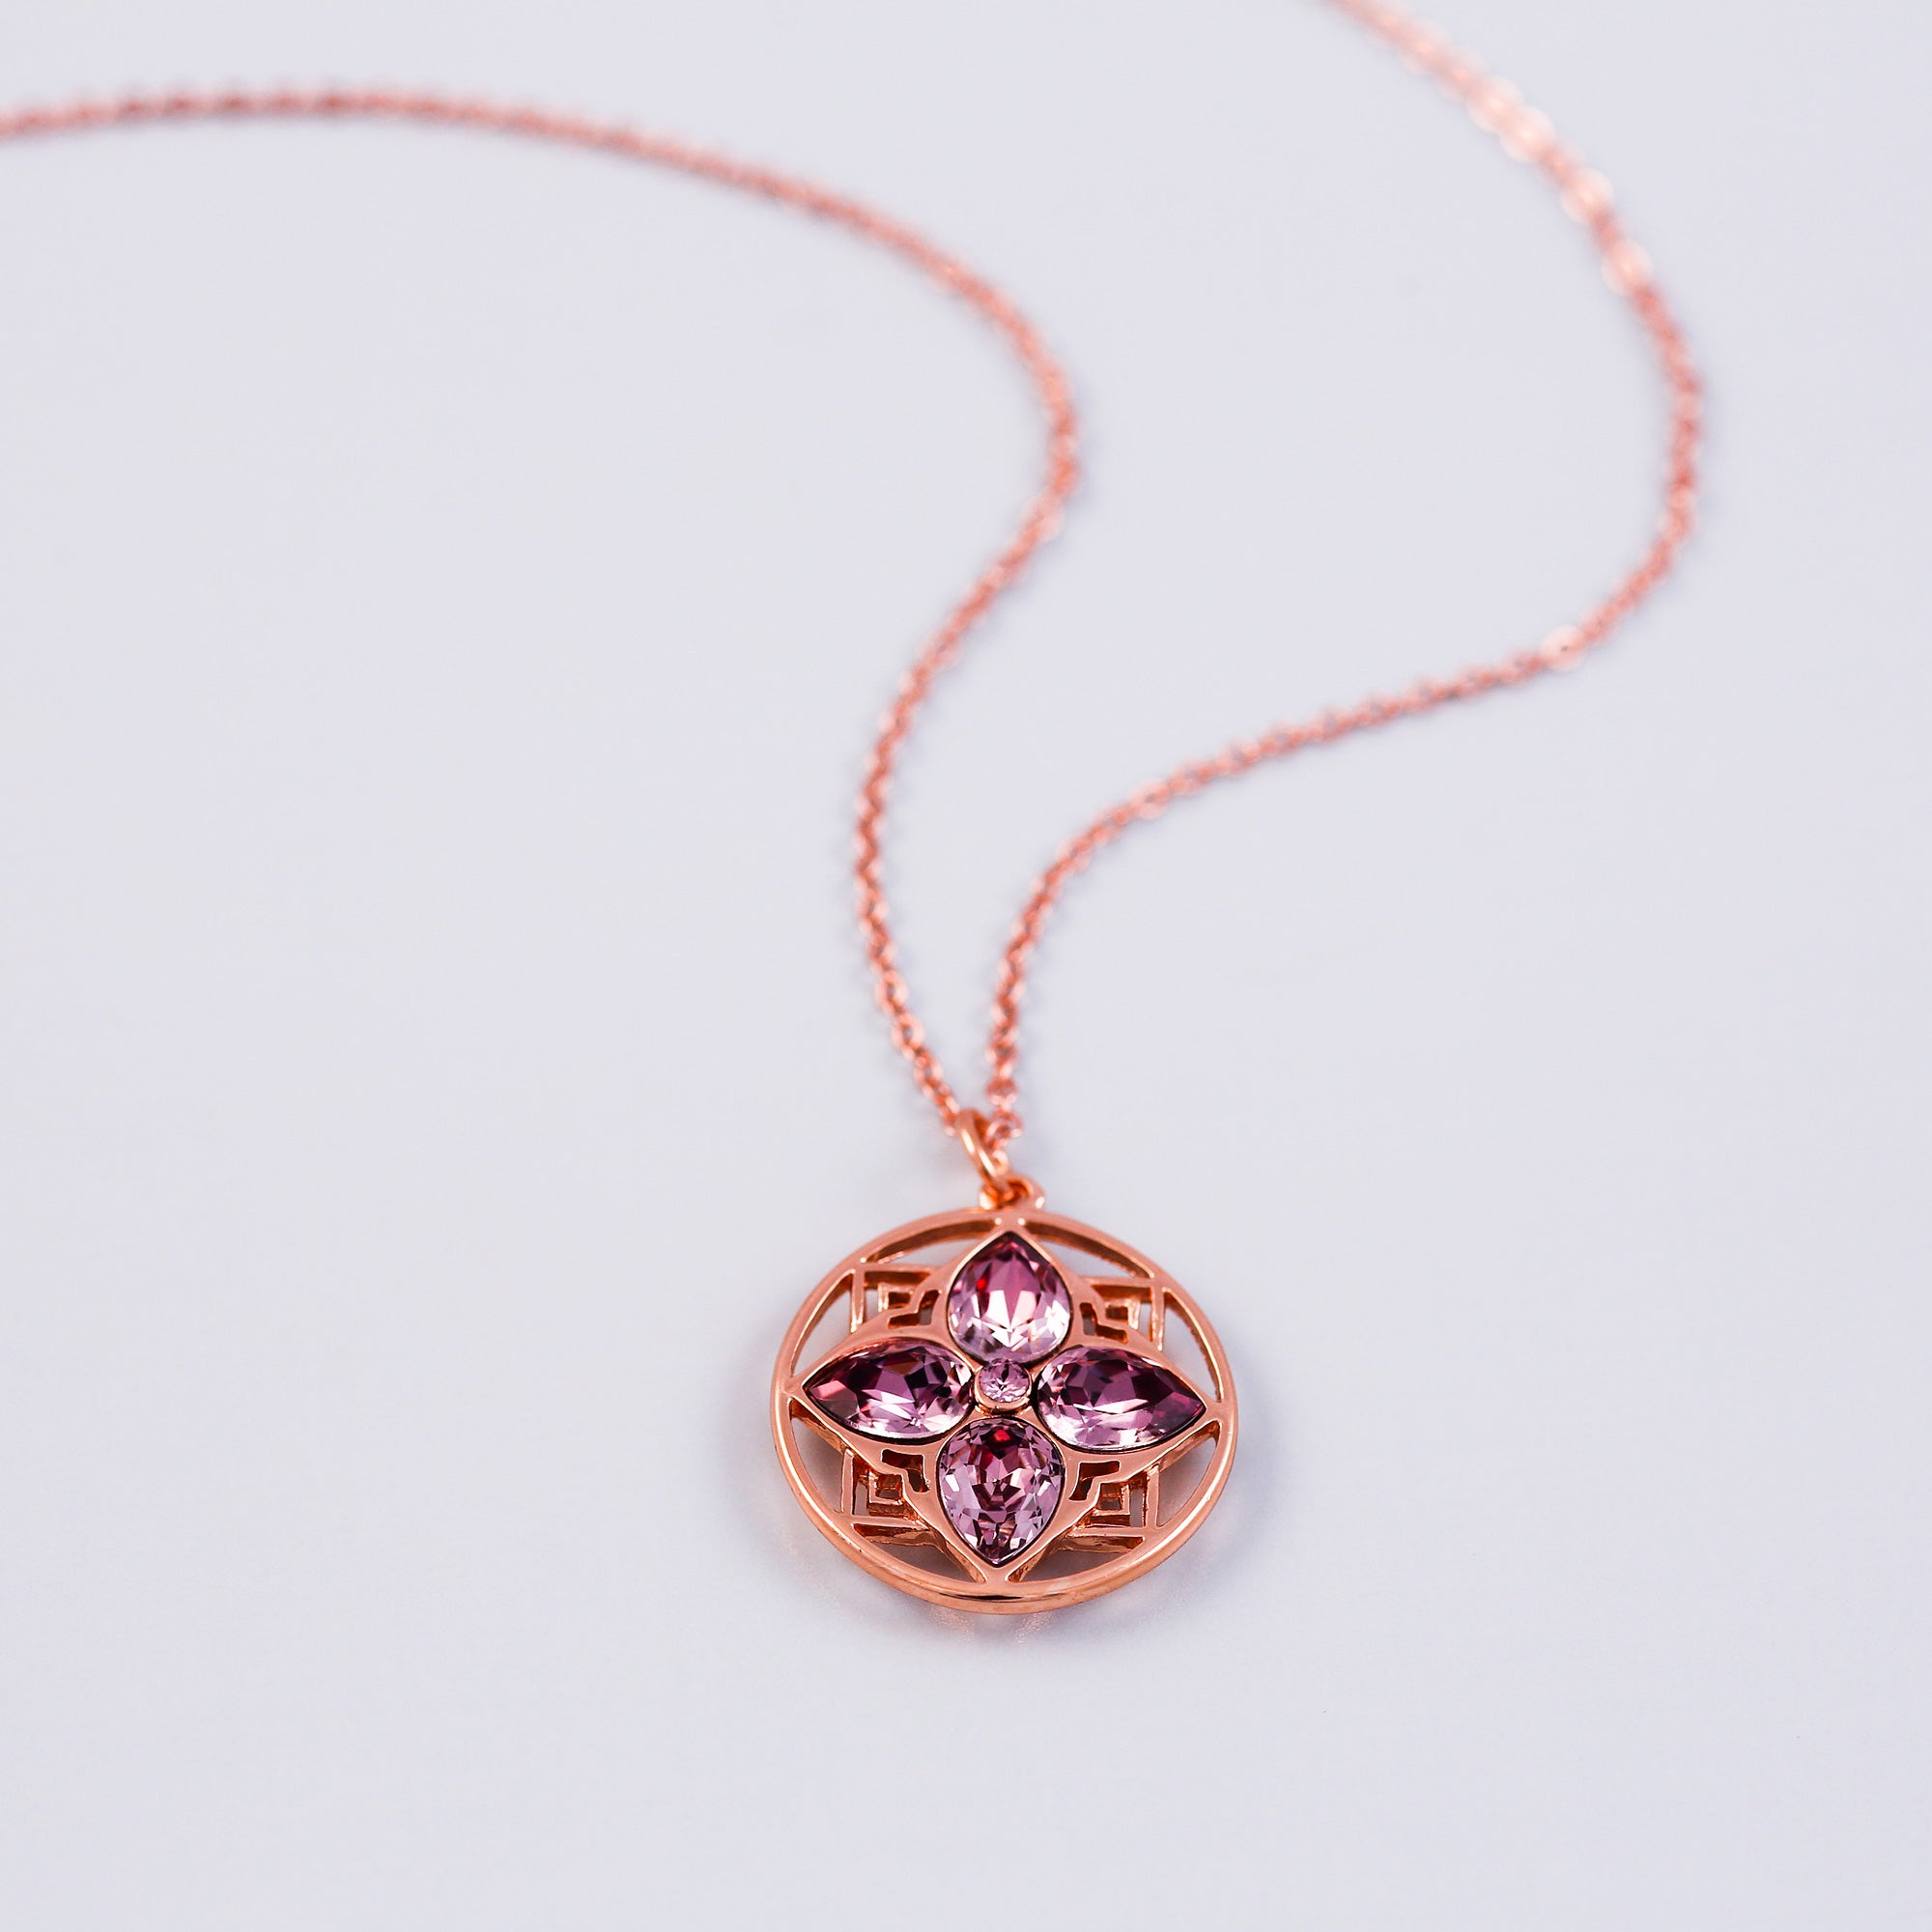 Arabesque Four Petal Flower Necklace | Rose Gold & Antique Pink